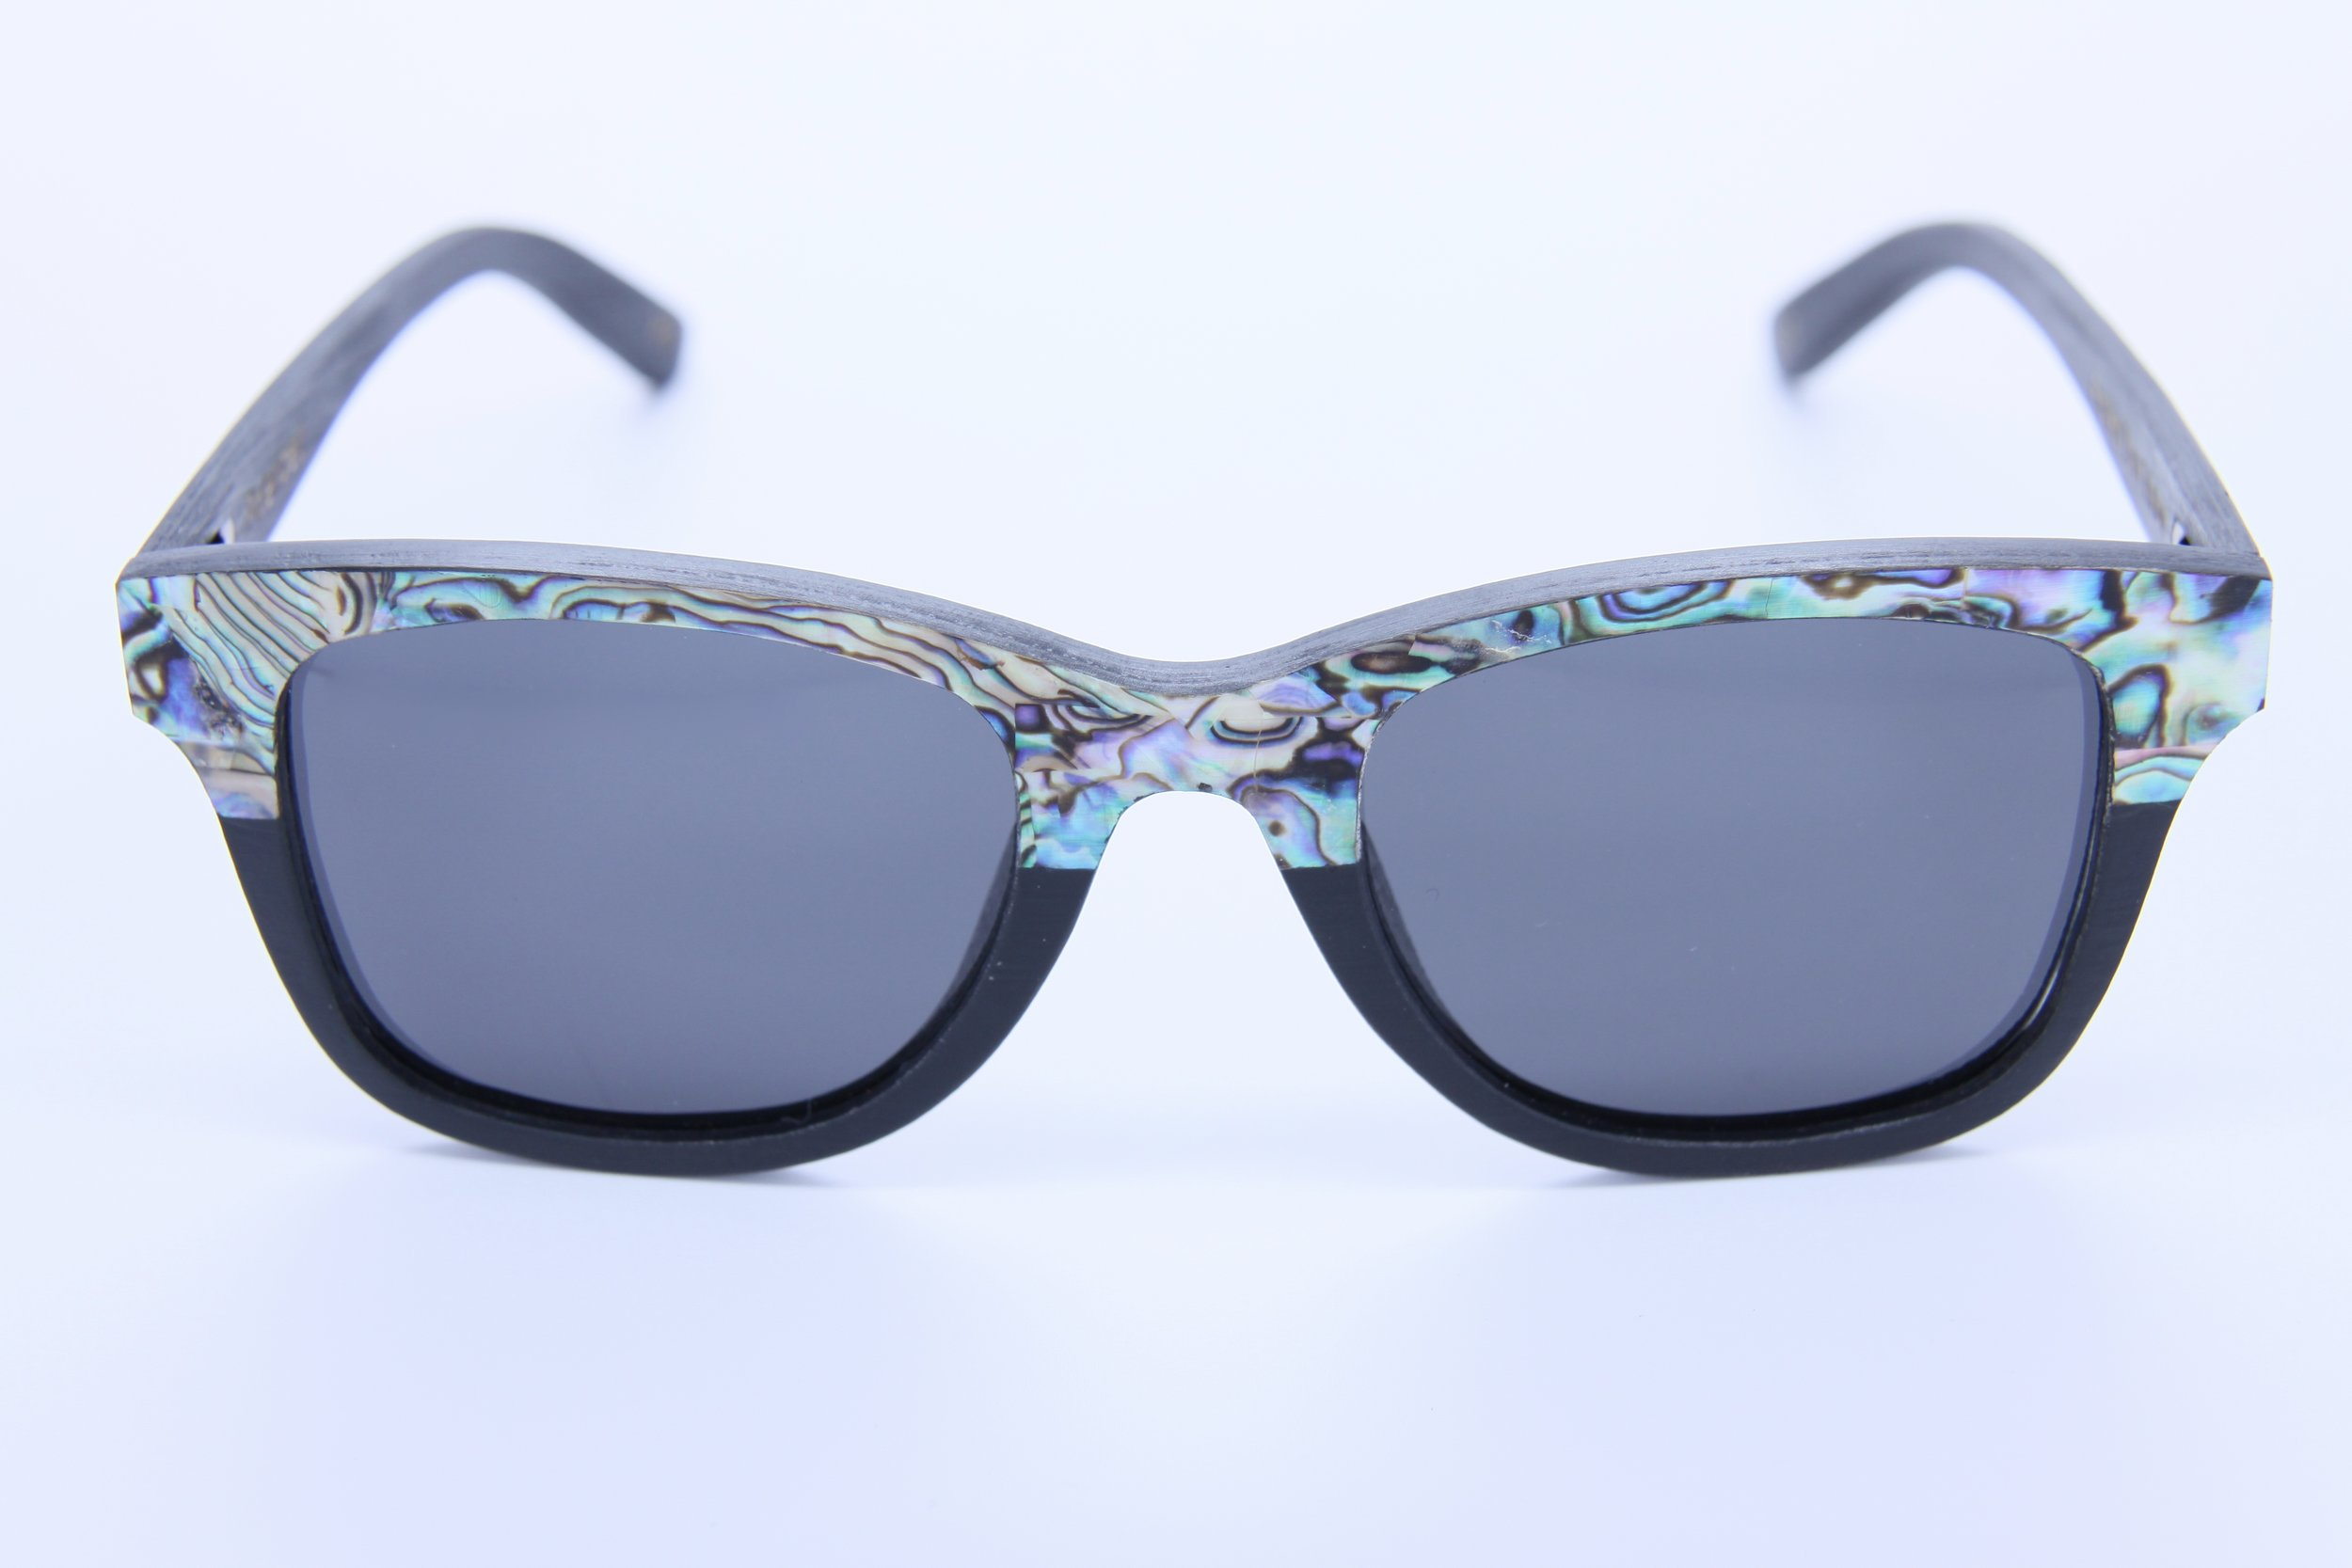 sunglasses luxury  Luxury \u0026 Eco Friendly Sunglasses \u2014 BreakWater breakwater handmade ...